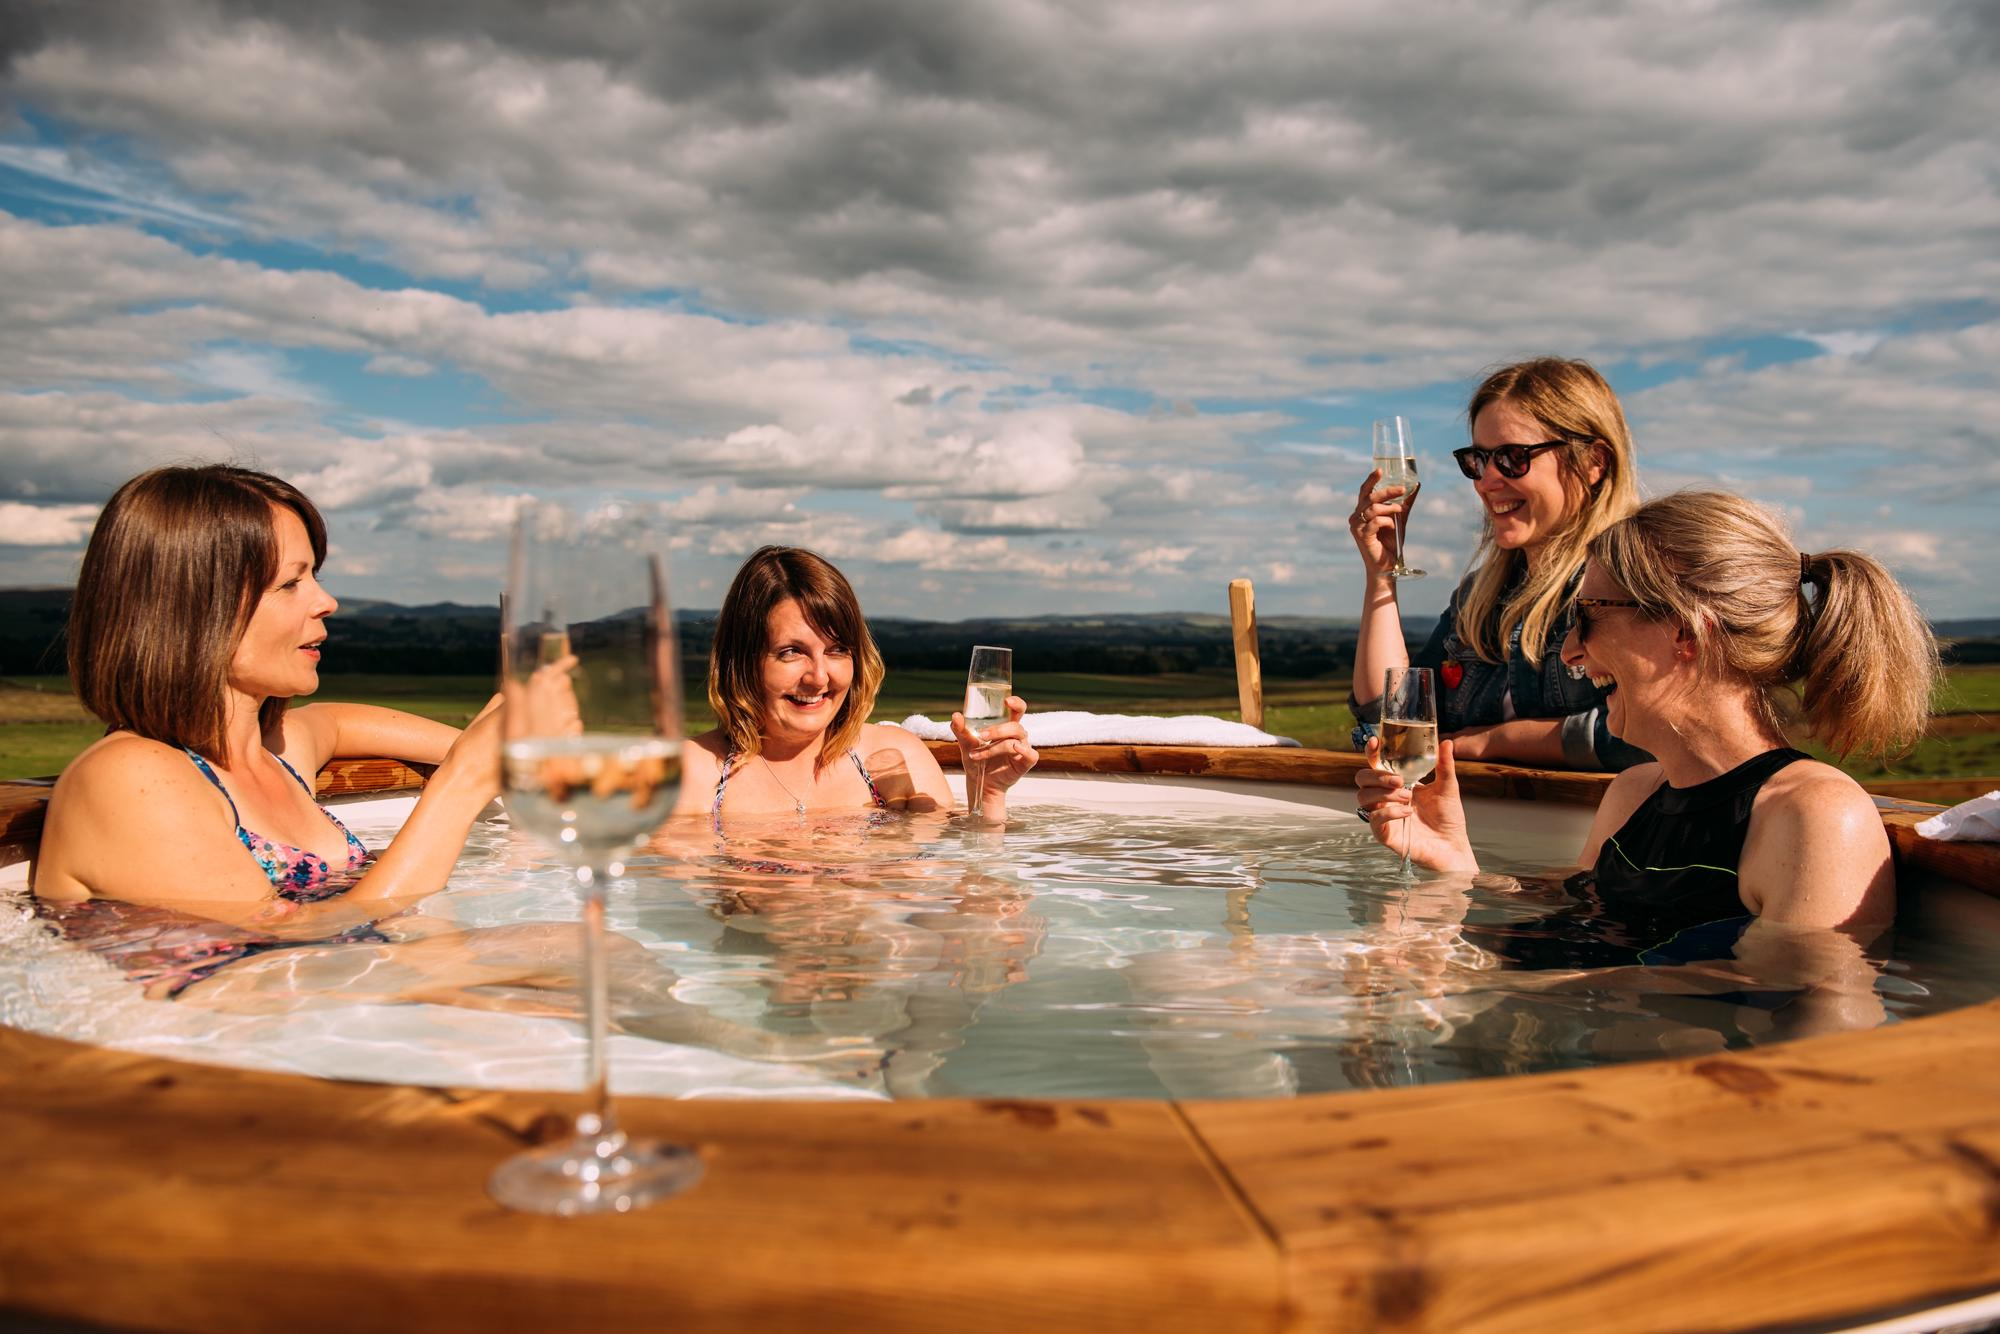 Hot Tub Glamping | The Best Glamping Sites With Hot Tubs